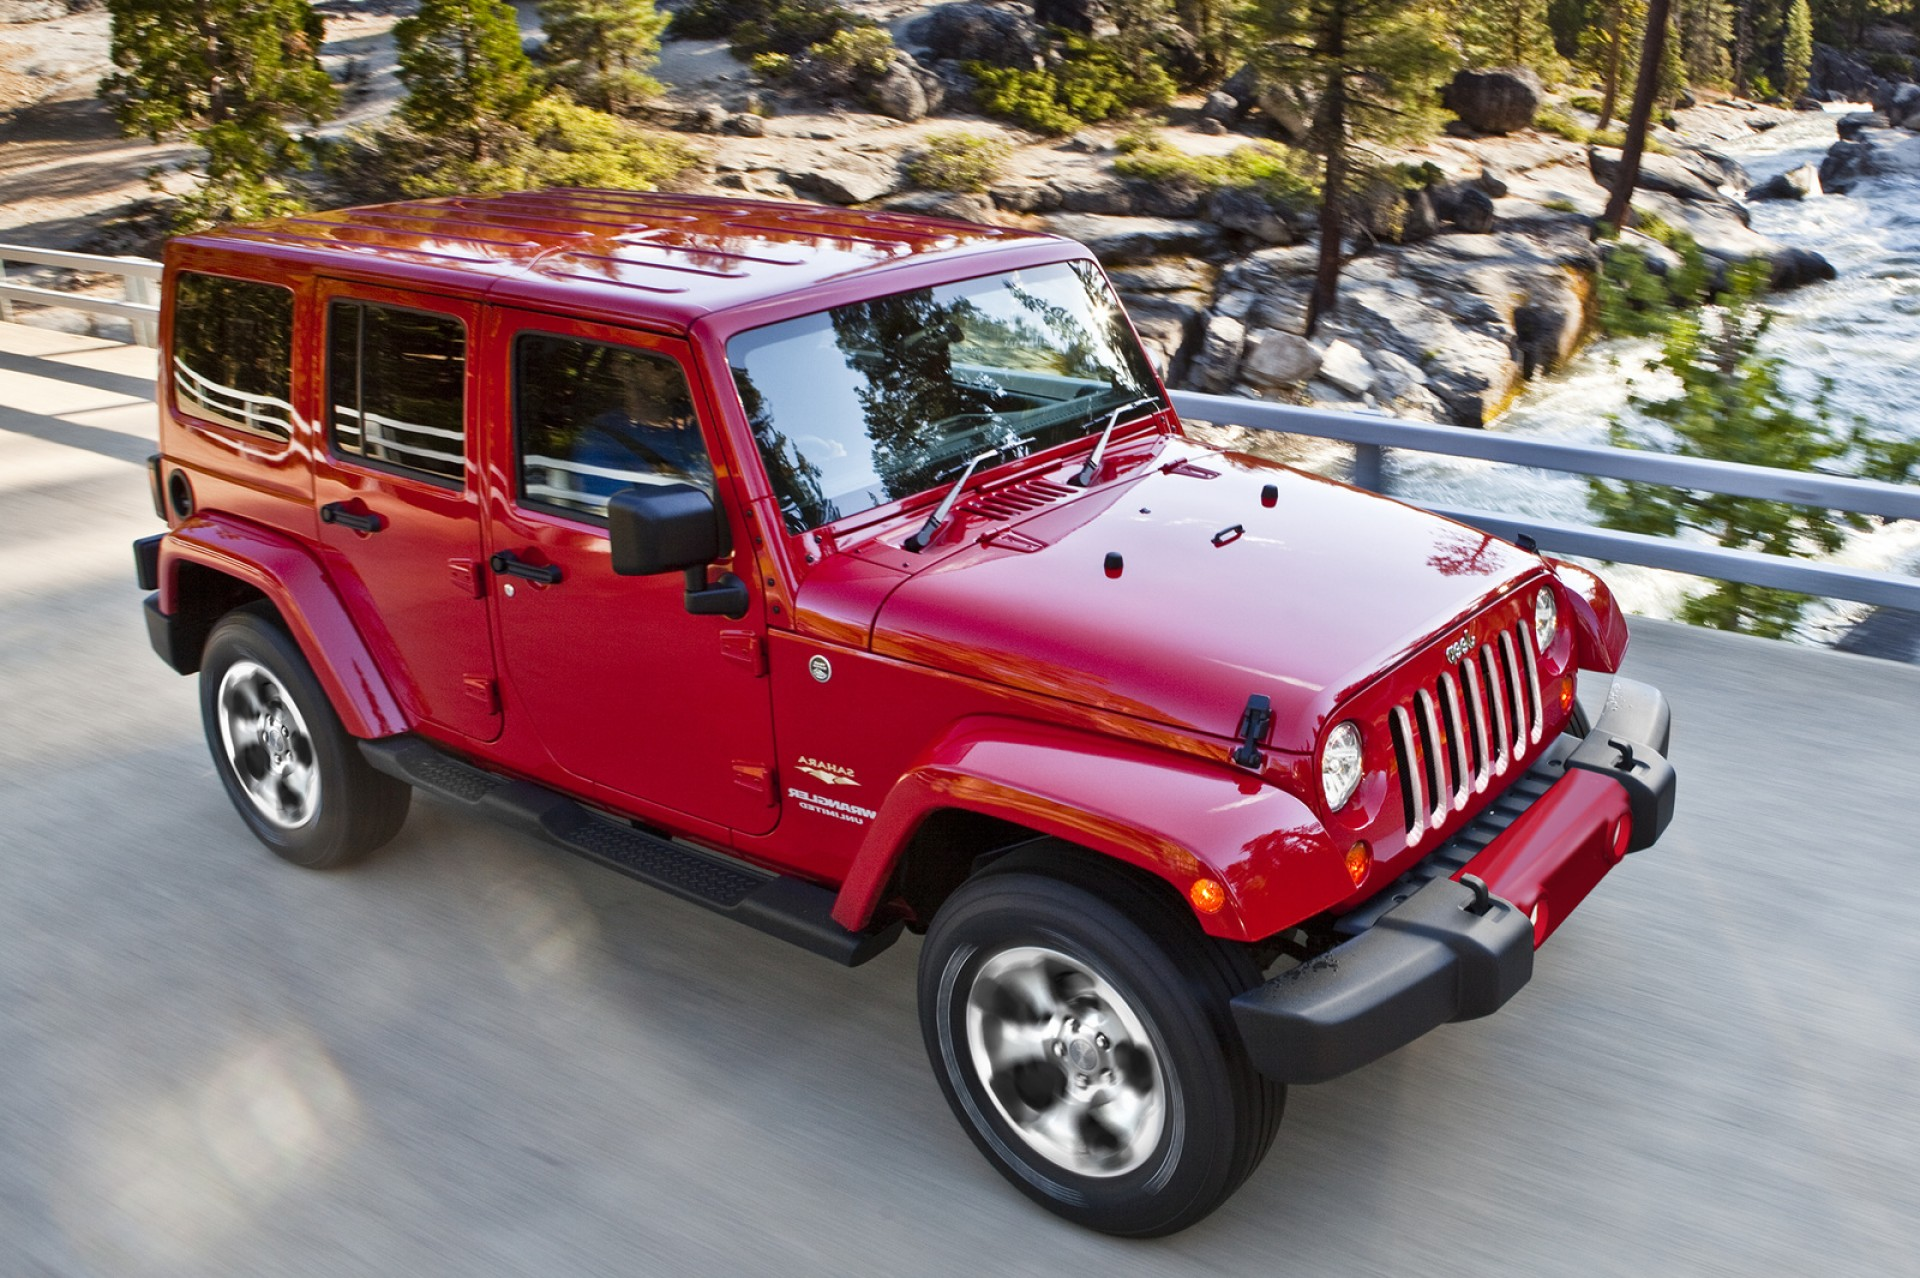 2014 Jeep Wrangler Vector: Jeep Wrangler Unlimited Overview C